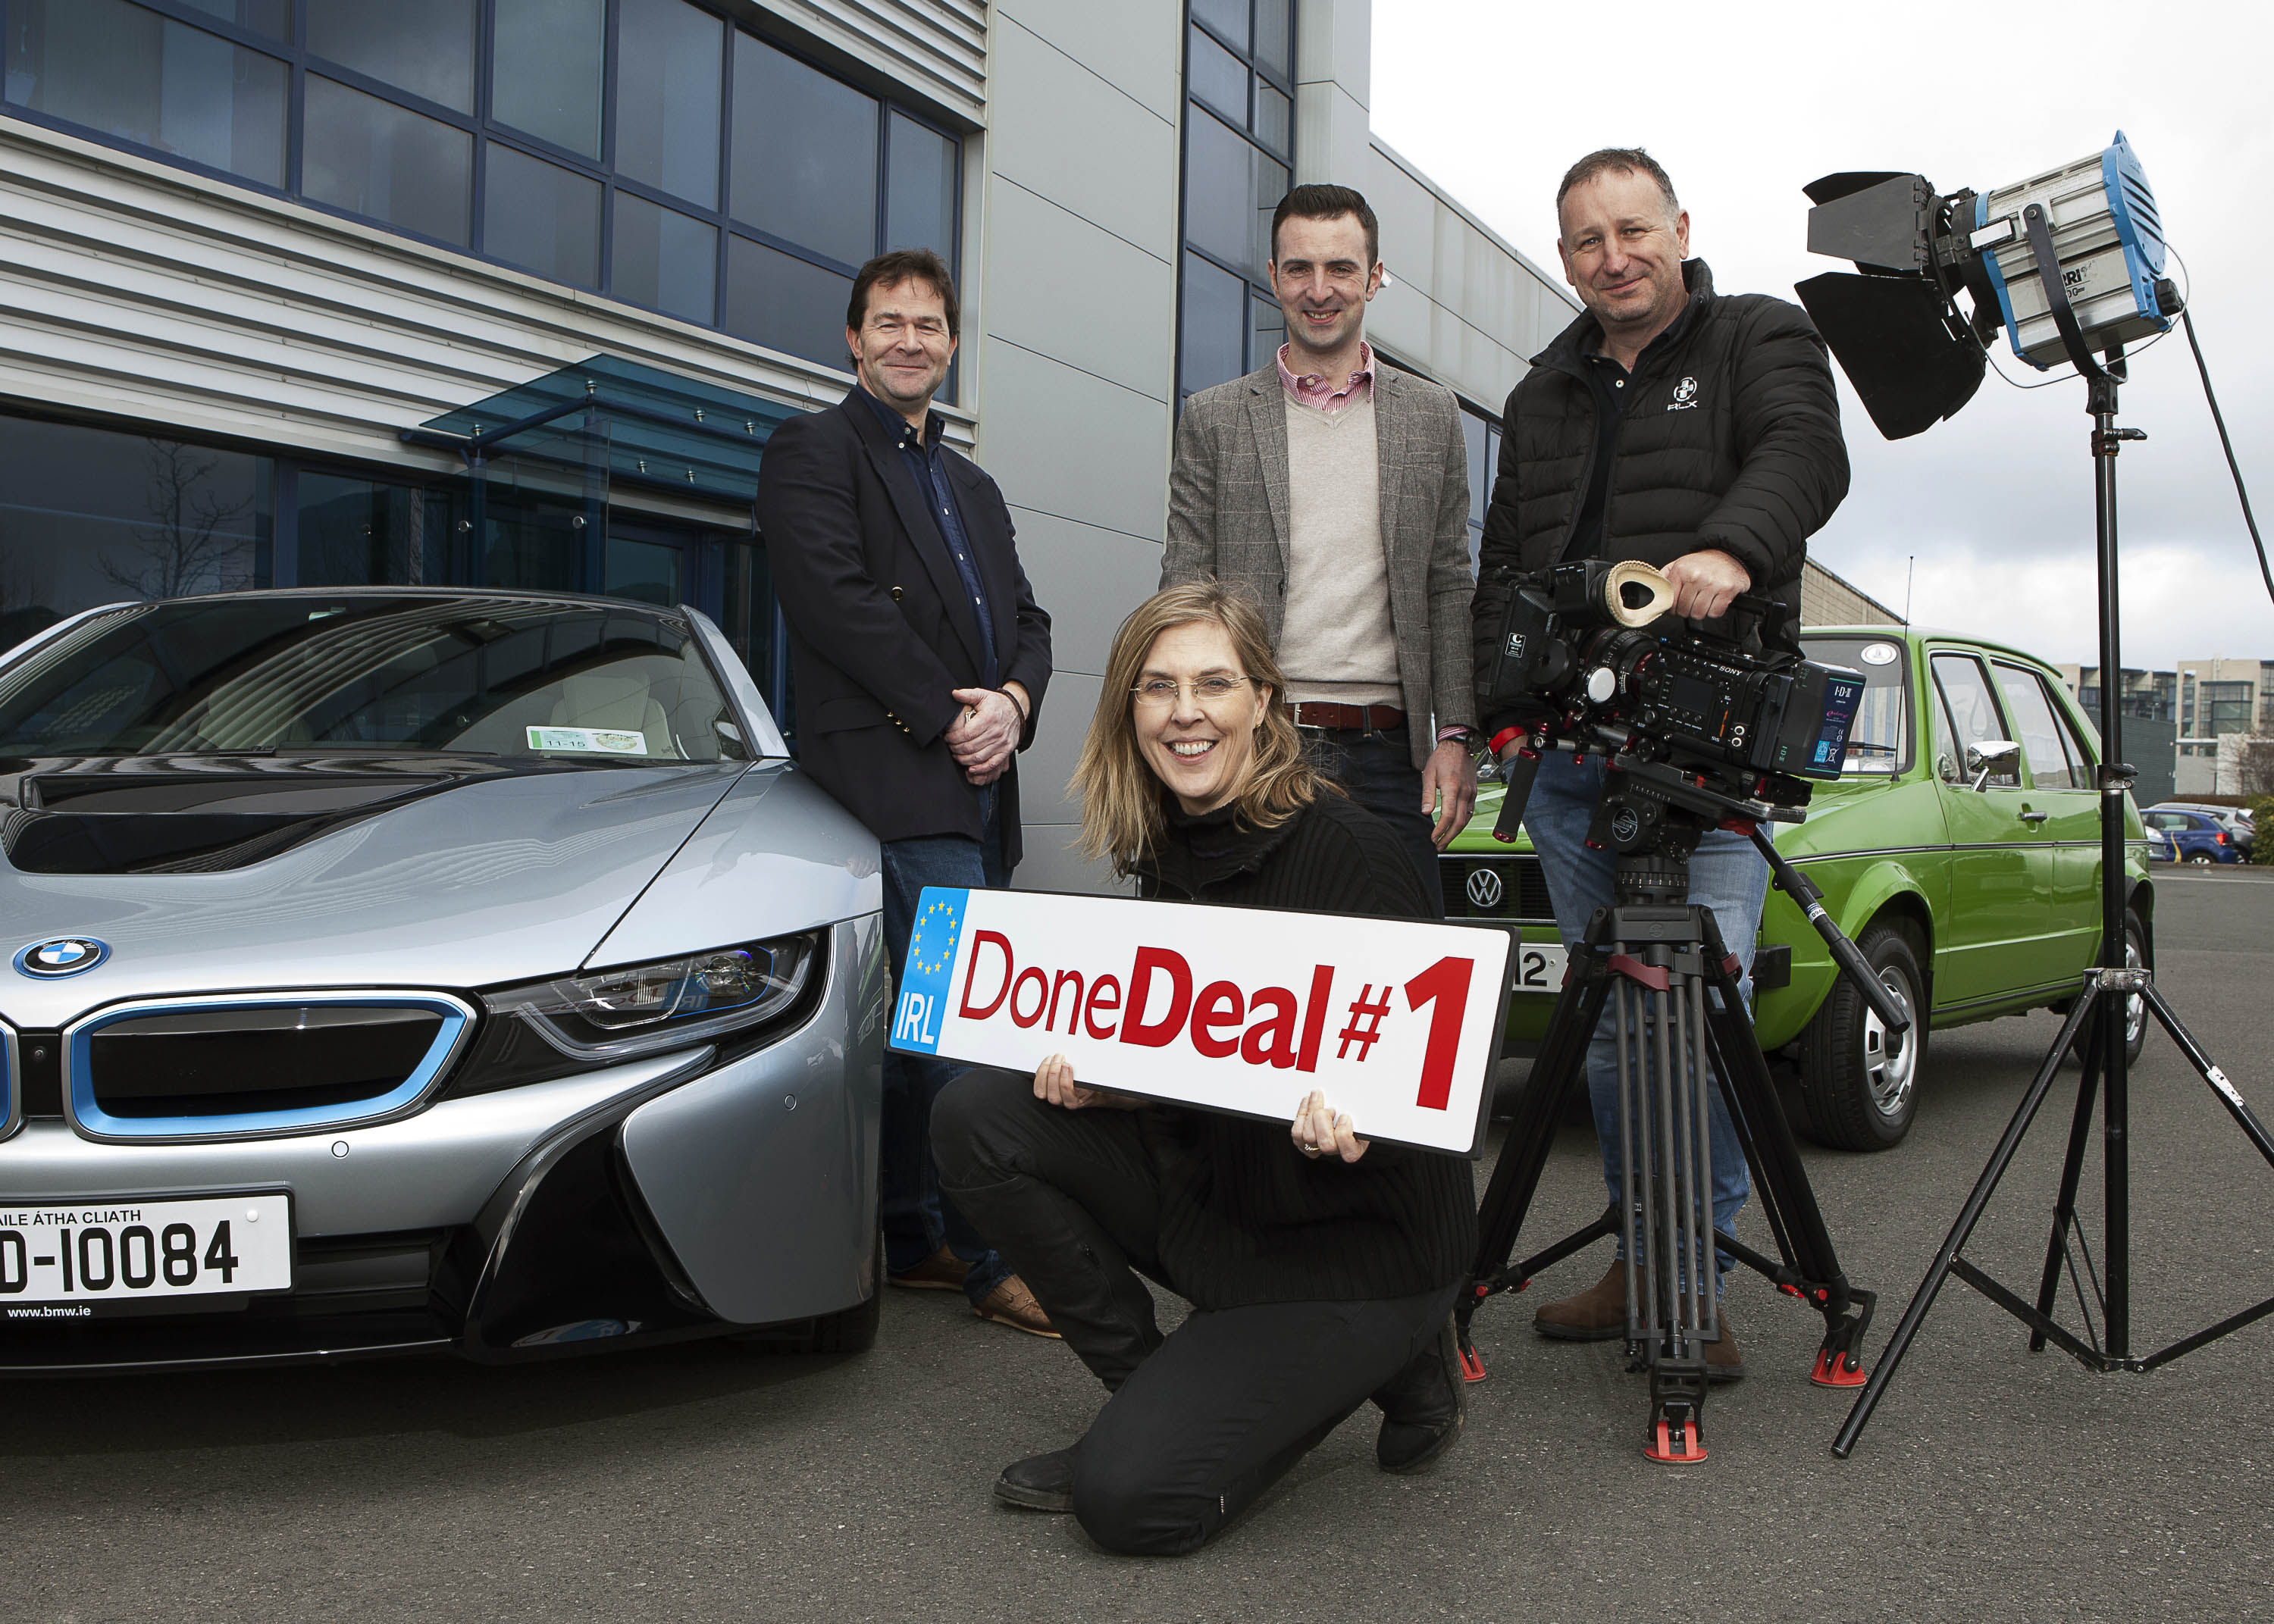 gasbagtv and donedeal partnership to bring you reviews of cars for sale in ireland